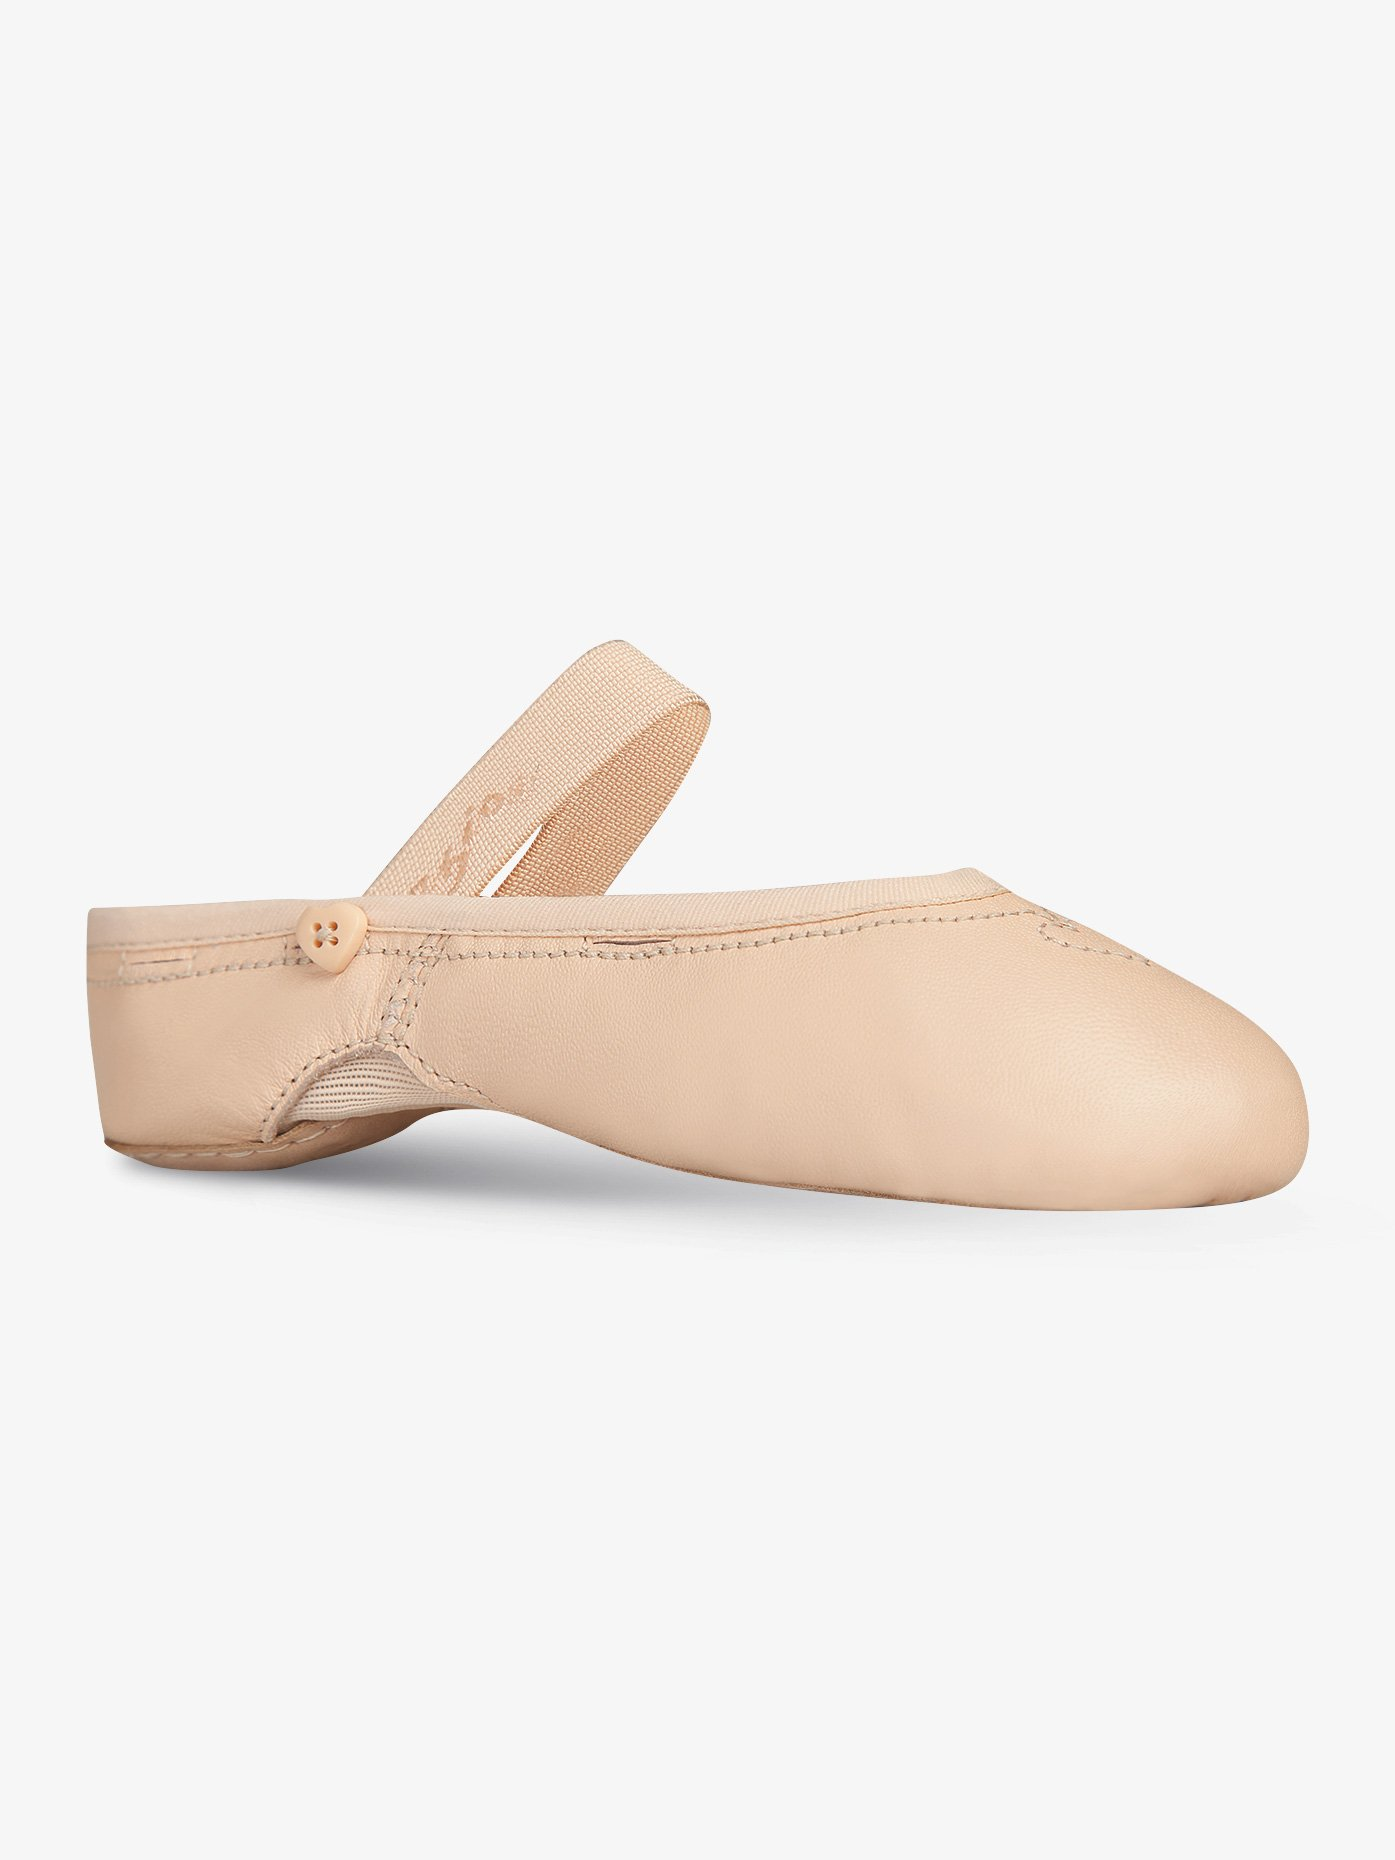 Capezio Child Love Ballet Leather Ballet Shoes 2035C